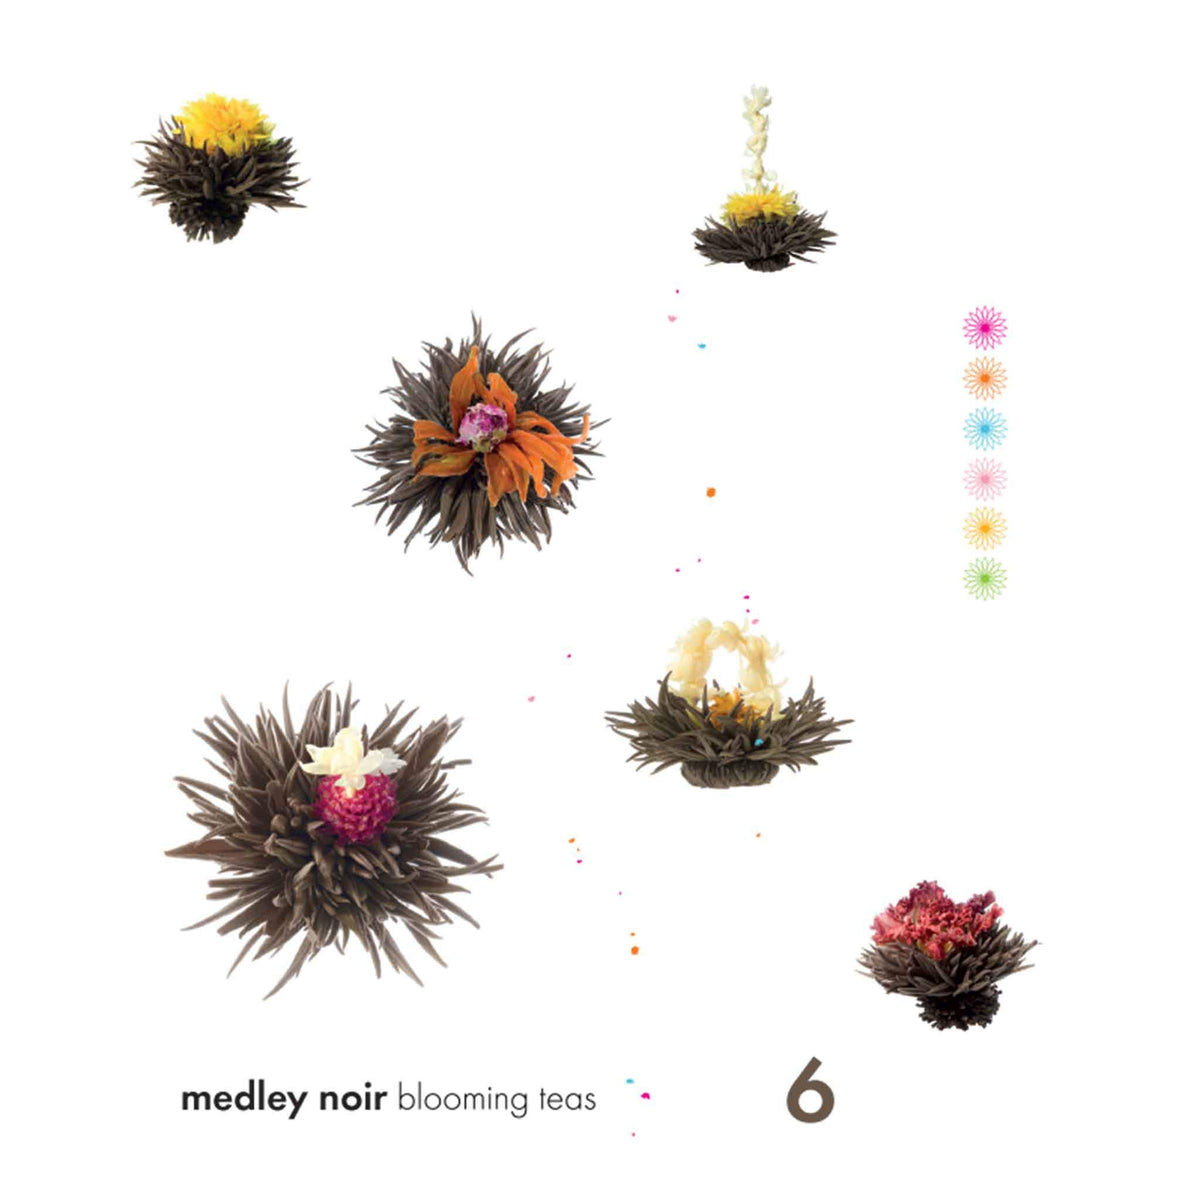 Medley Noir Blooming Tea